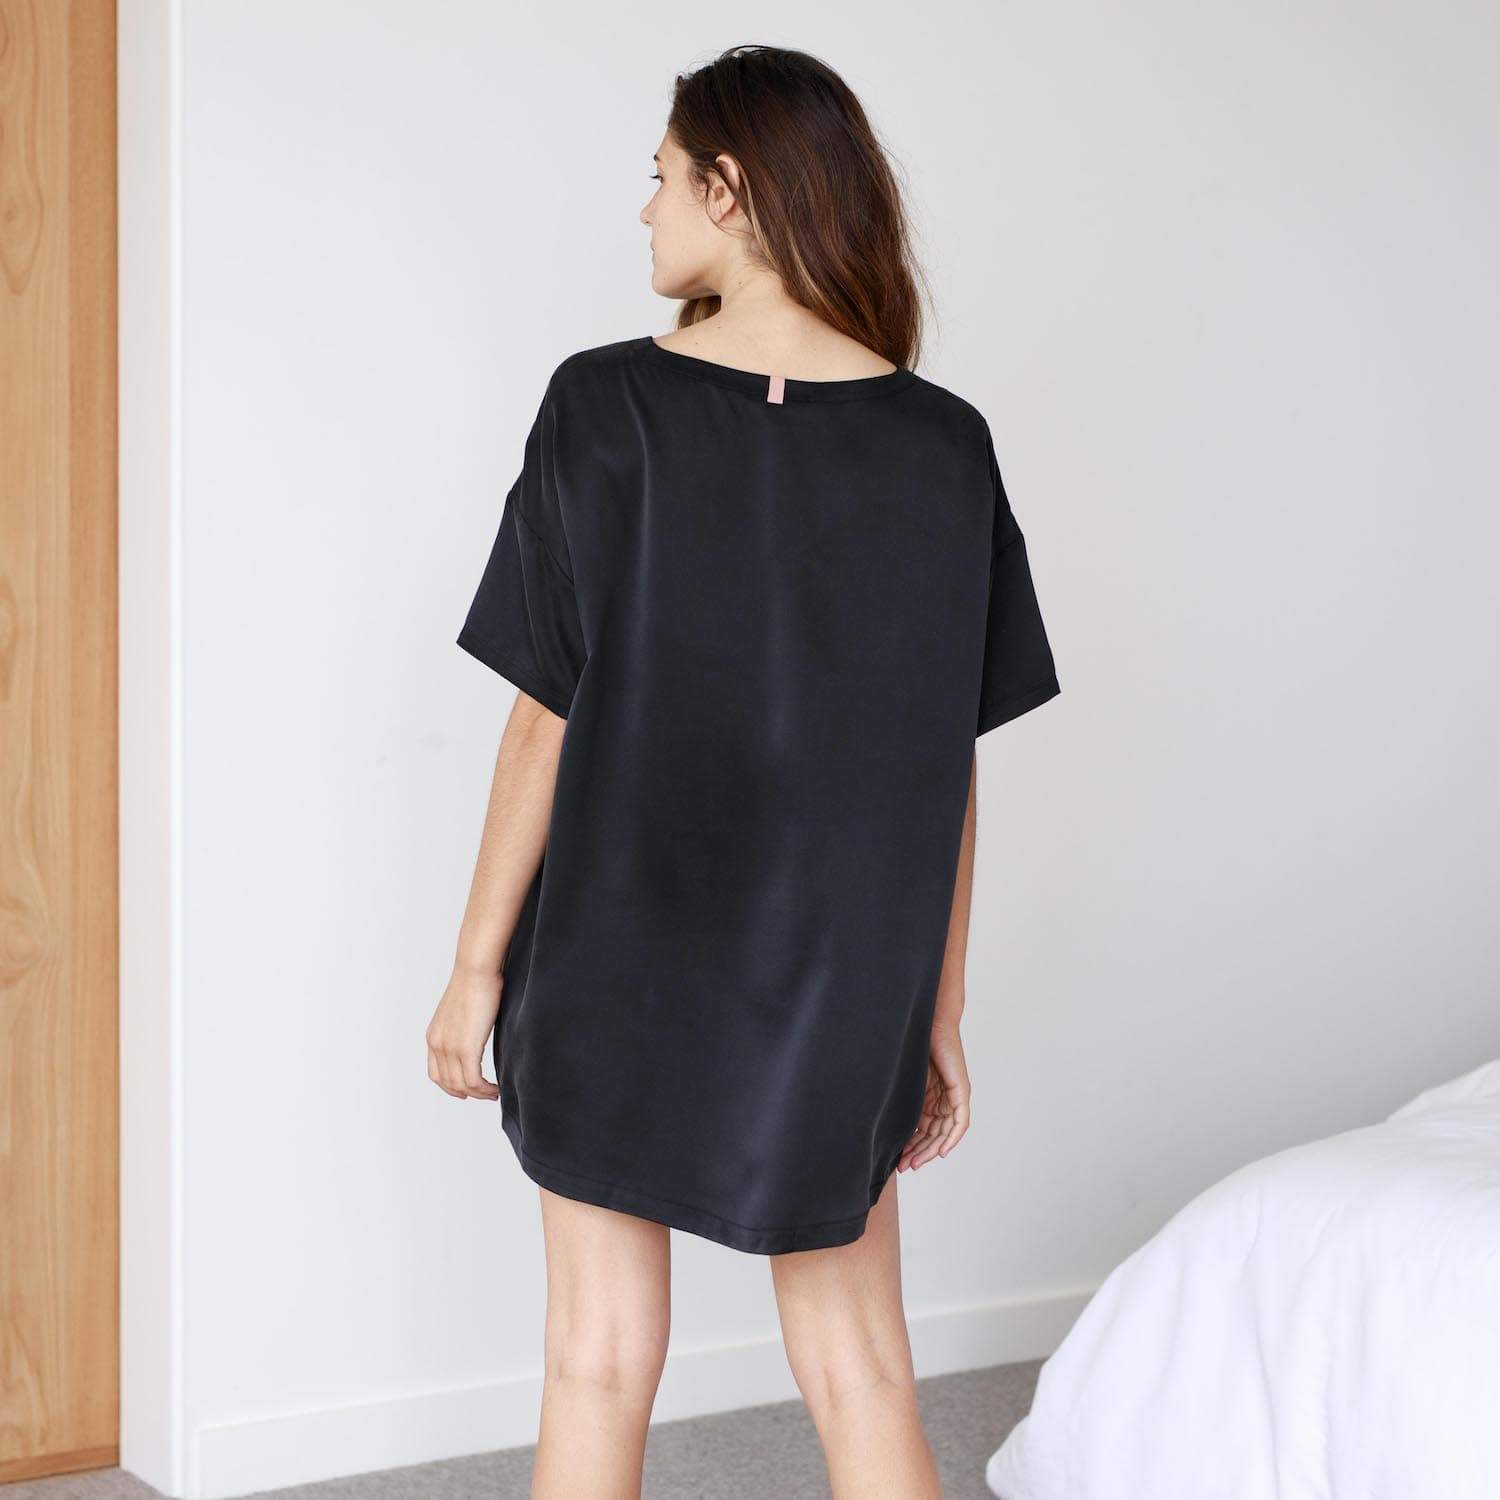 Lunya Sleepwear Washable Silk Tee Set - #Black